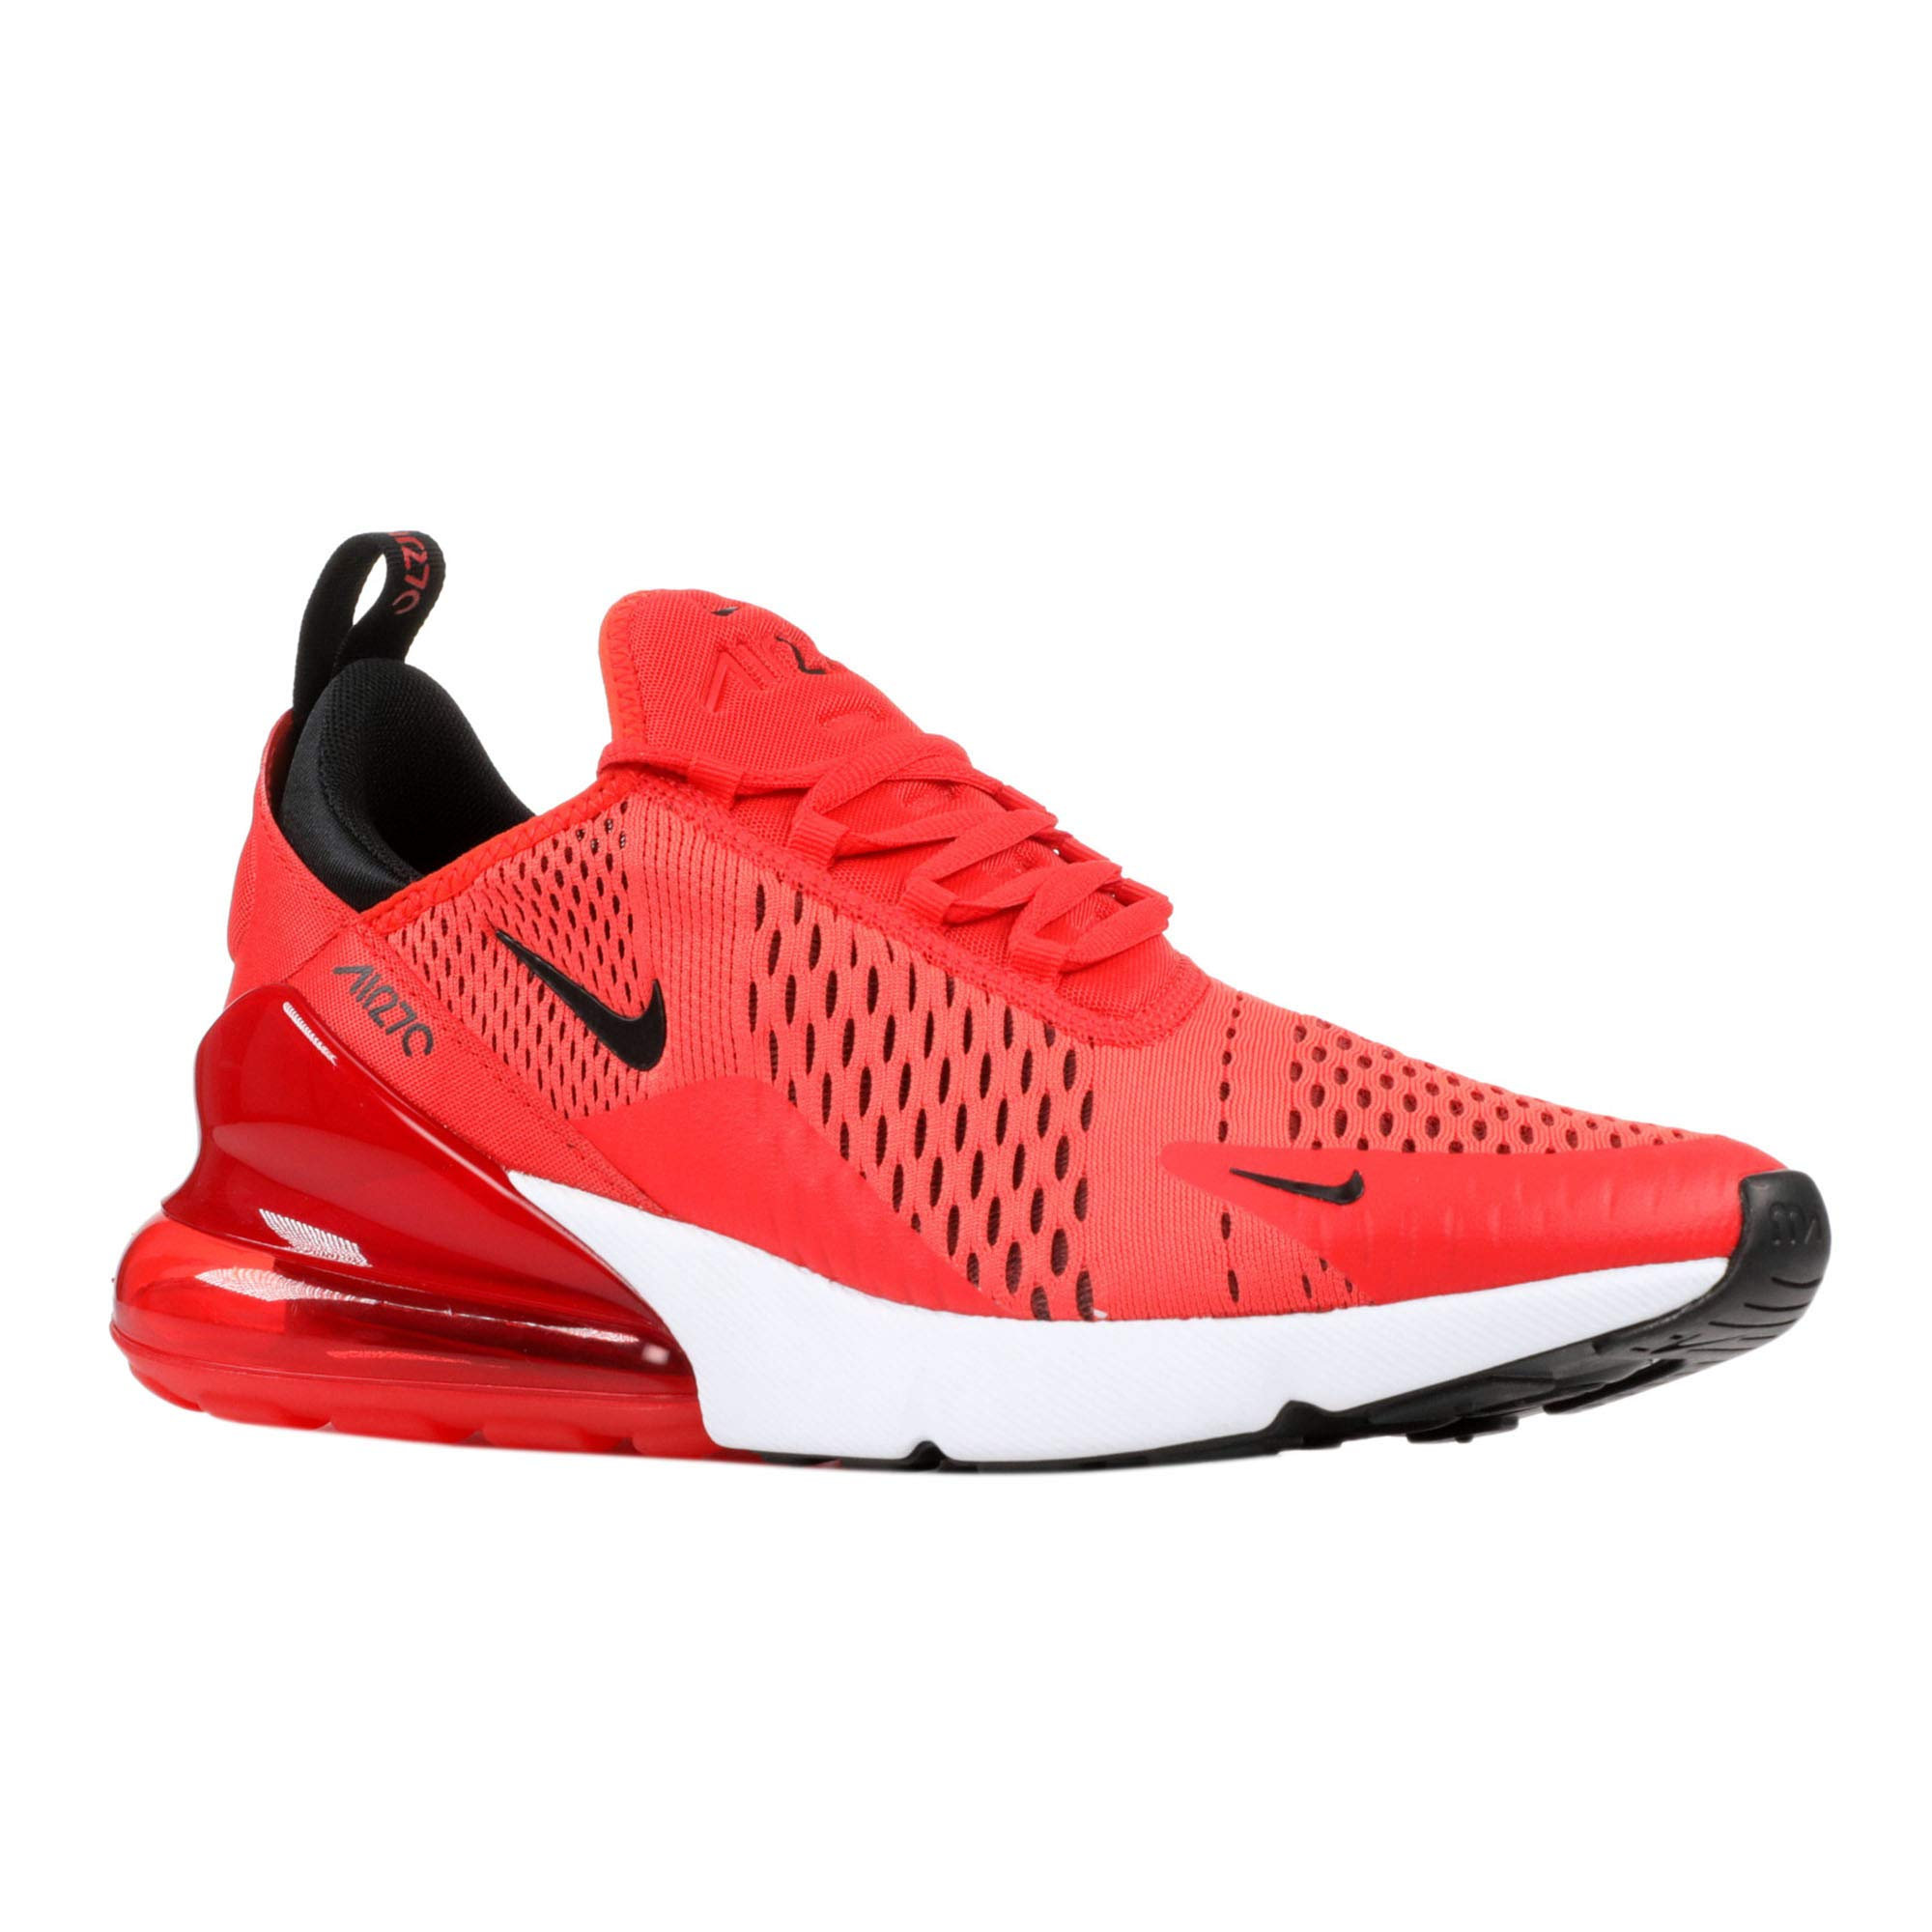 pretty nice 5e252 71d88 Galleon - NIKE Air Max 270 Men s Shoes Habanero Red Black White Ah8050-601  (10.5 D(M) US)